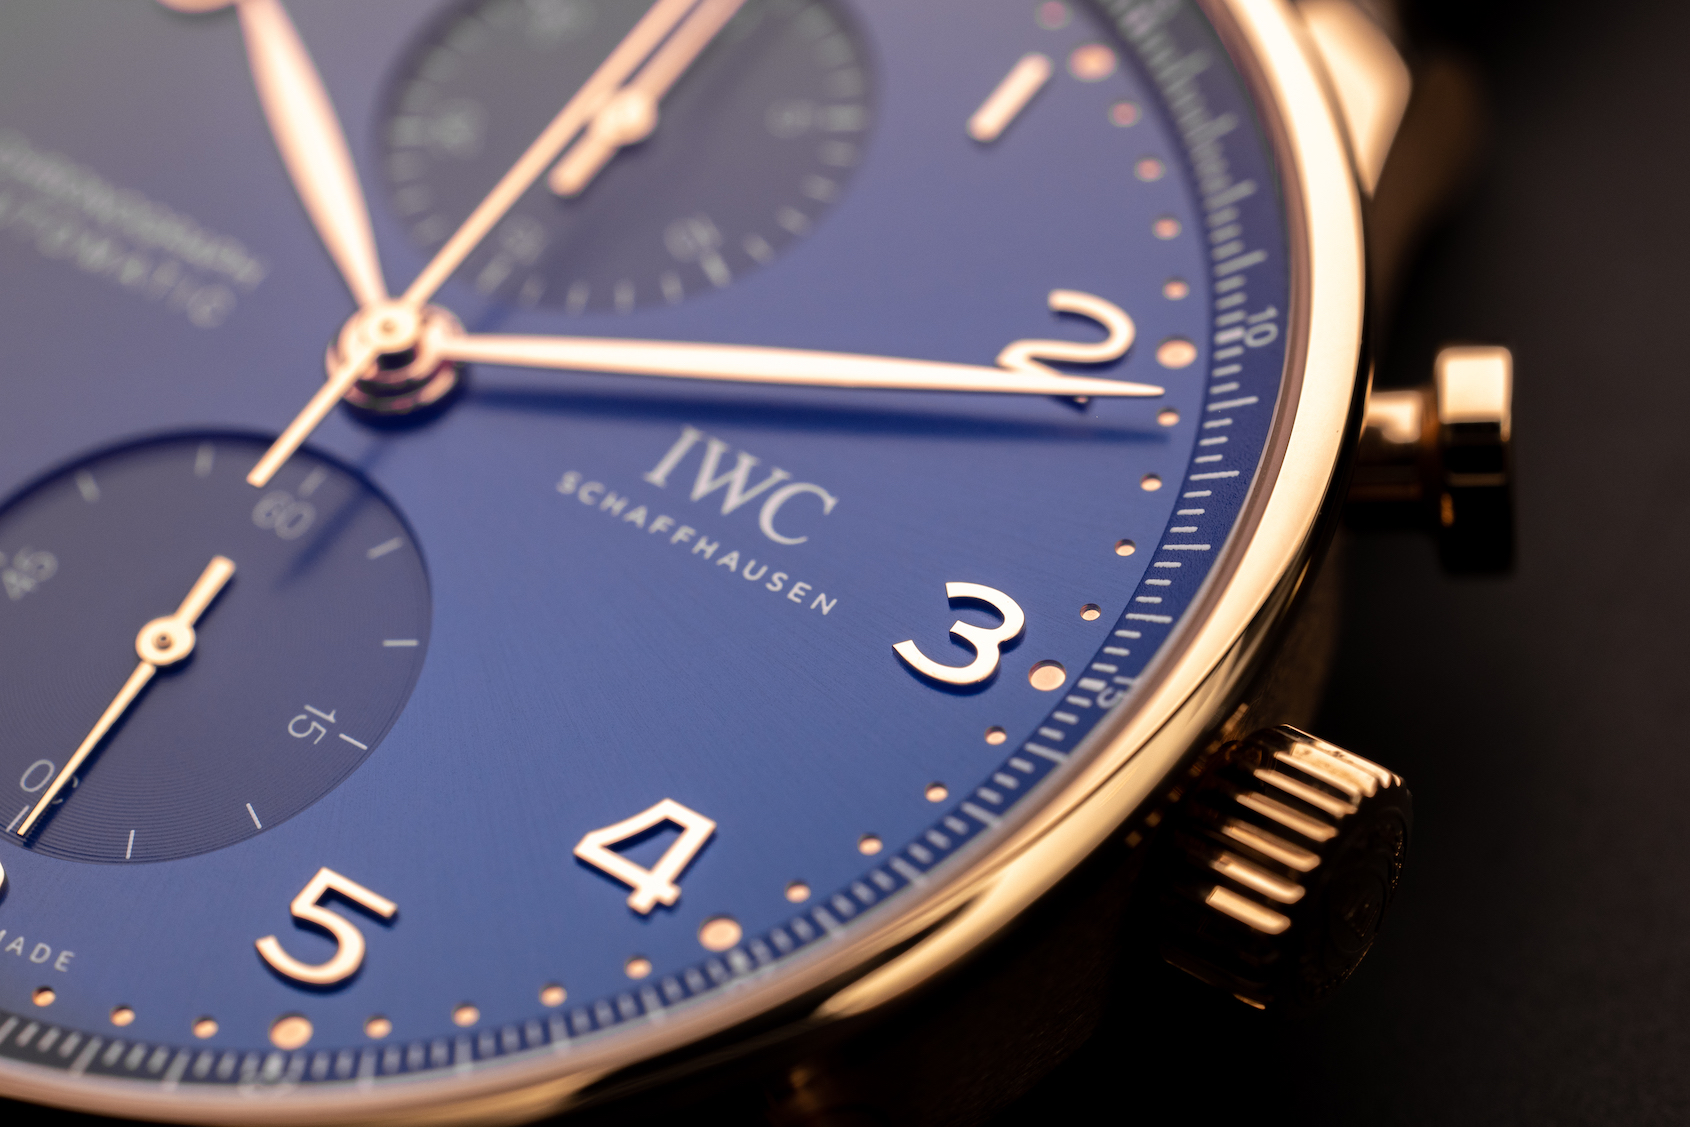 IWC Portugieser 2020 Collection